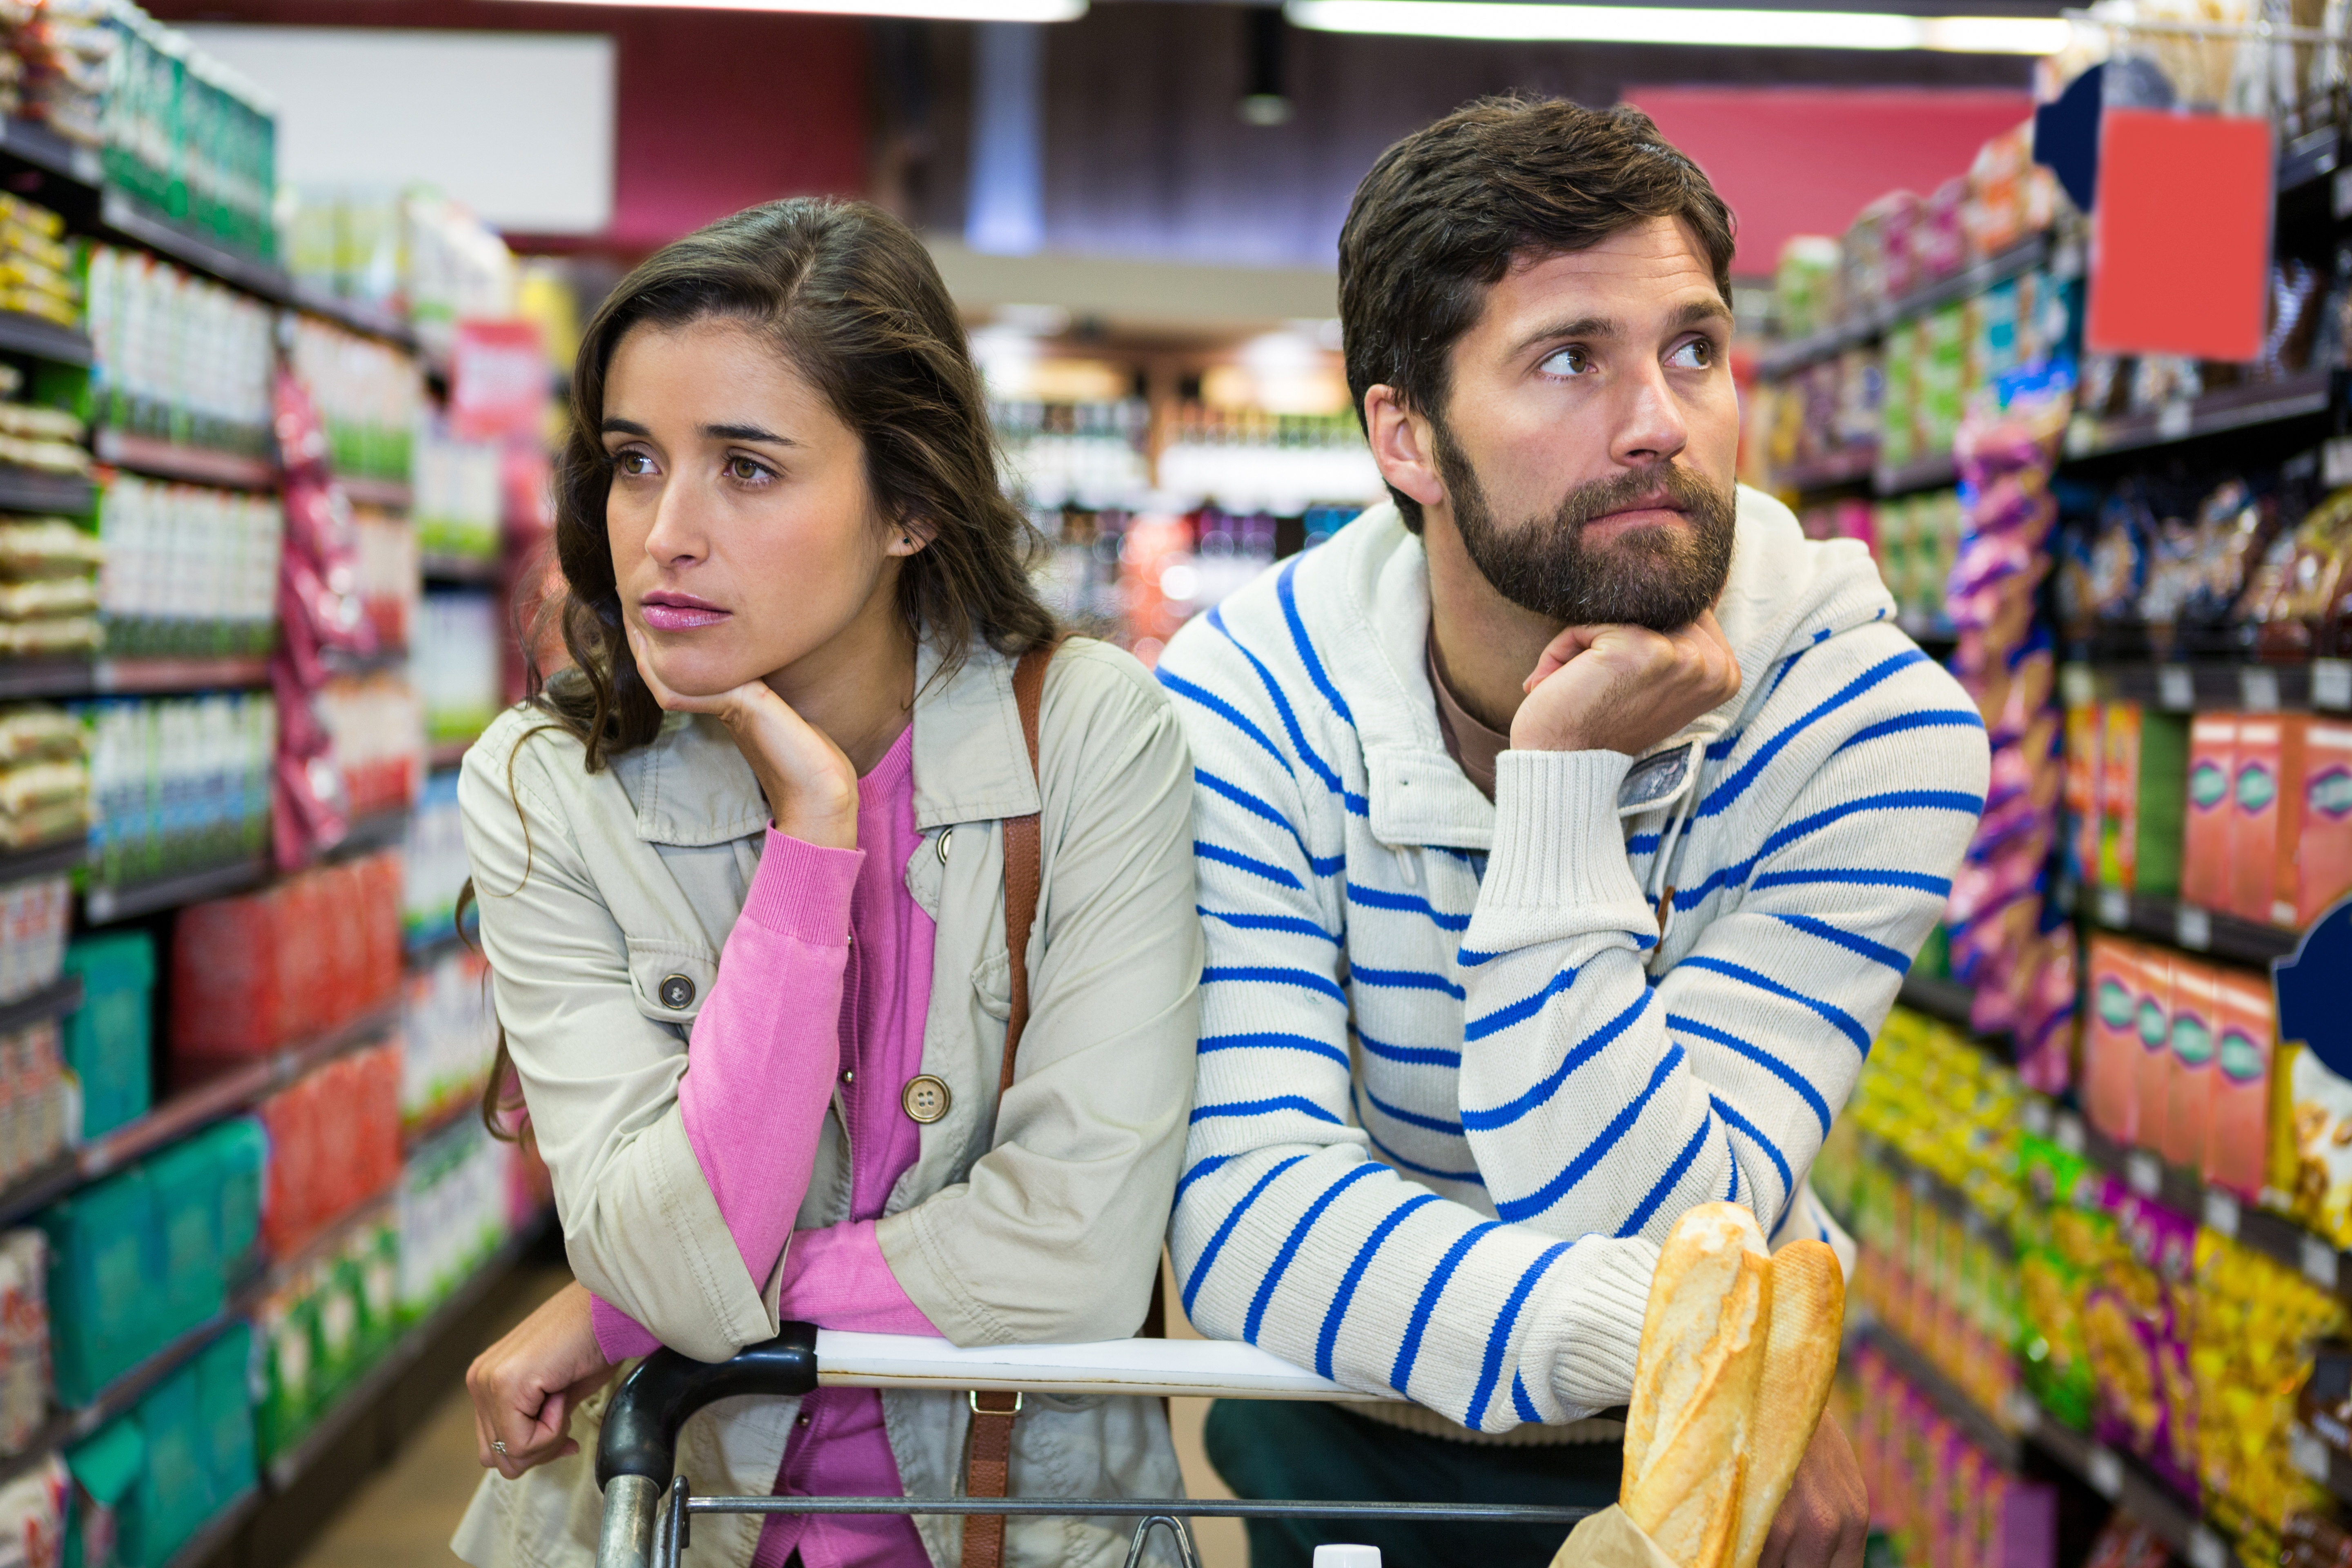 Man and Woman at supermarket- JConnelly blog- Don't Slip into the Comfort of Conformity